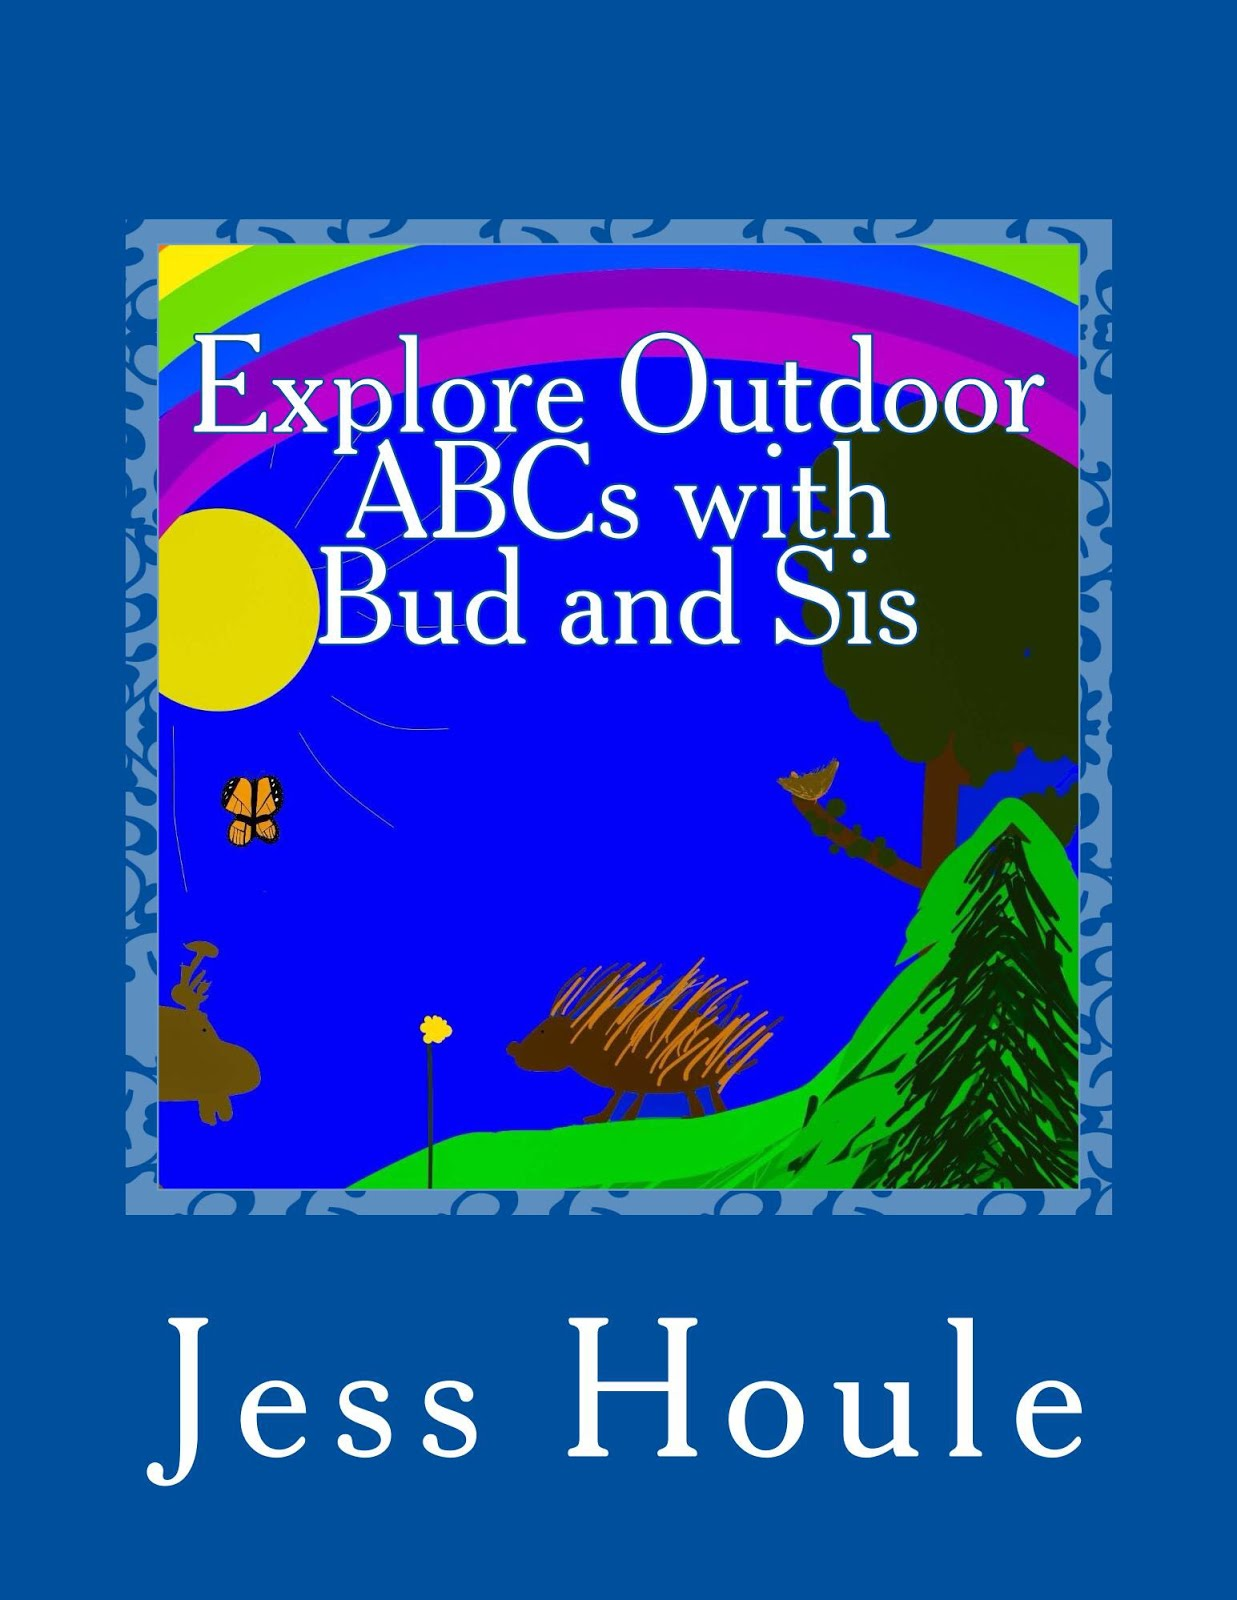 Explore Outdoor ABCs with Bud and Sis